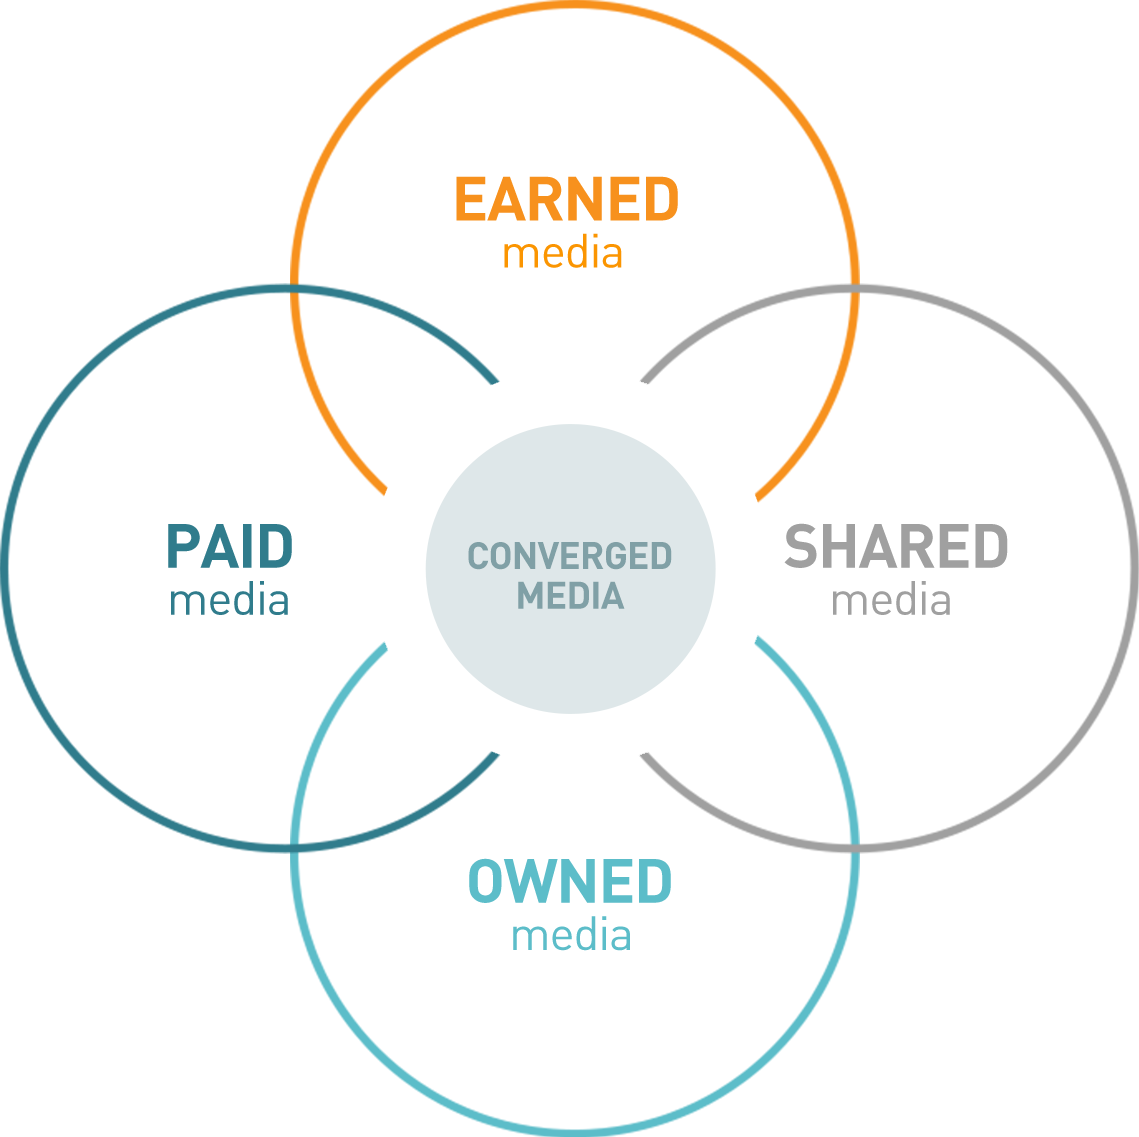 paid-earned-shared-owned